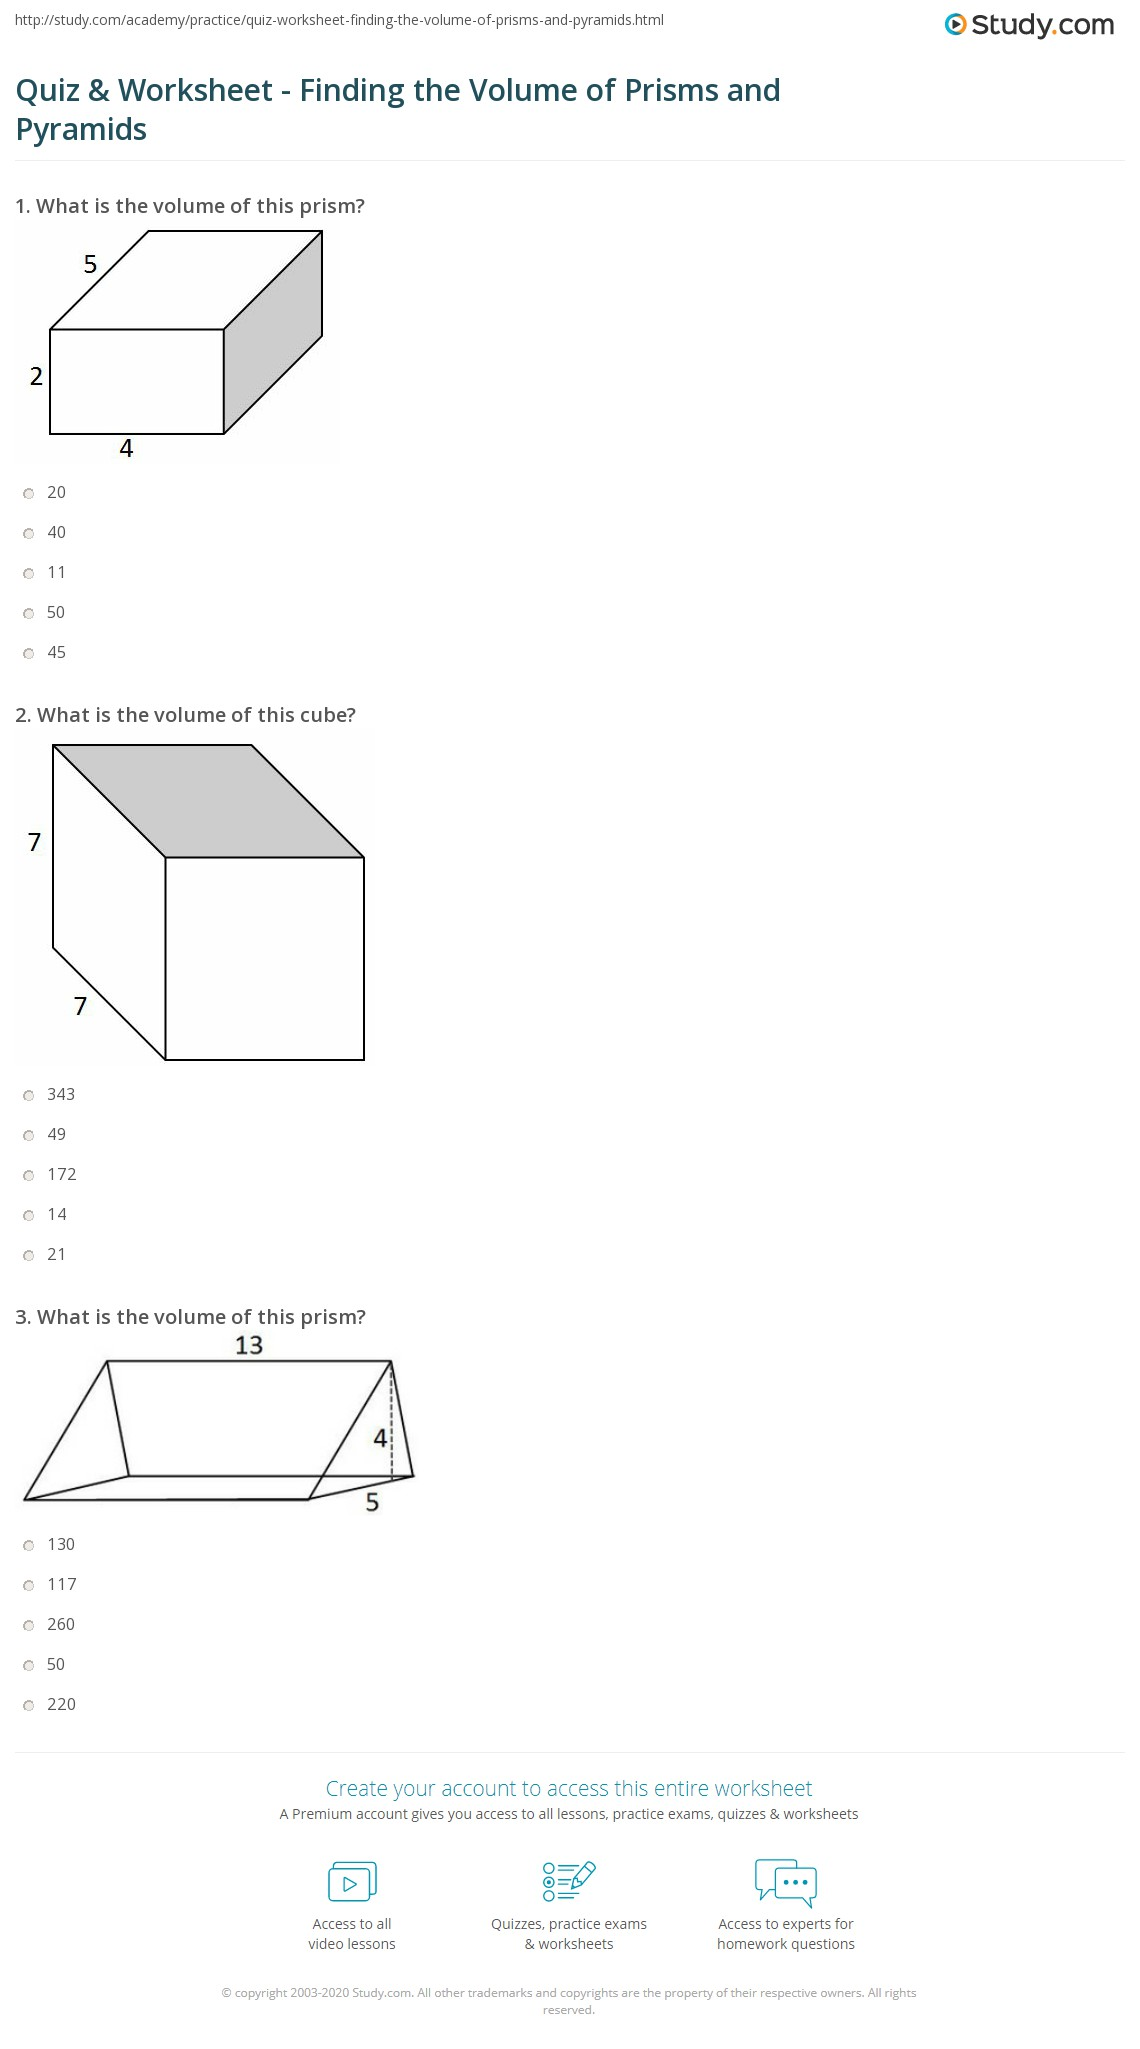 Worksheets Volume Cubes Worksheet worksheet volume of a cube mytourvn study site quiz finding the prisms and pyramids print